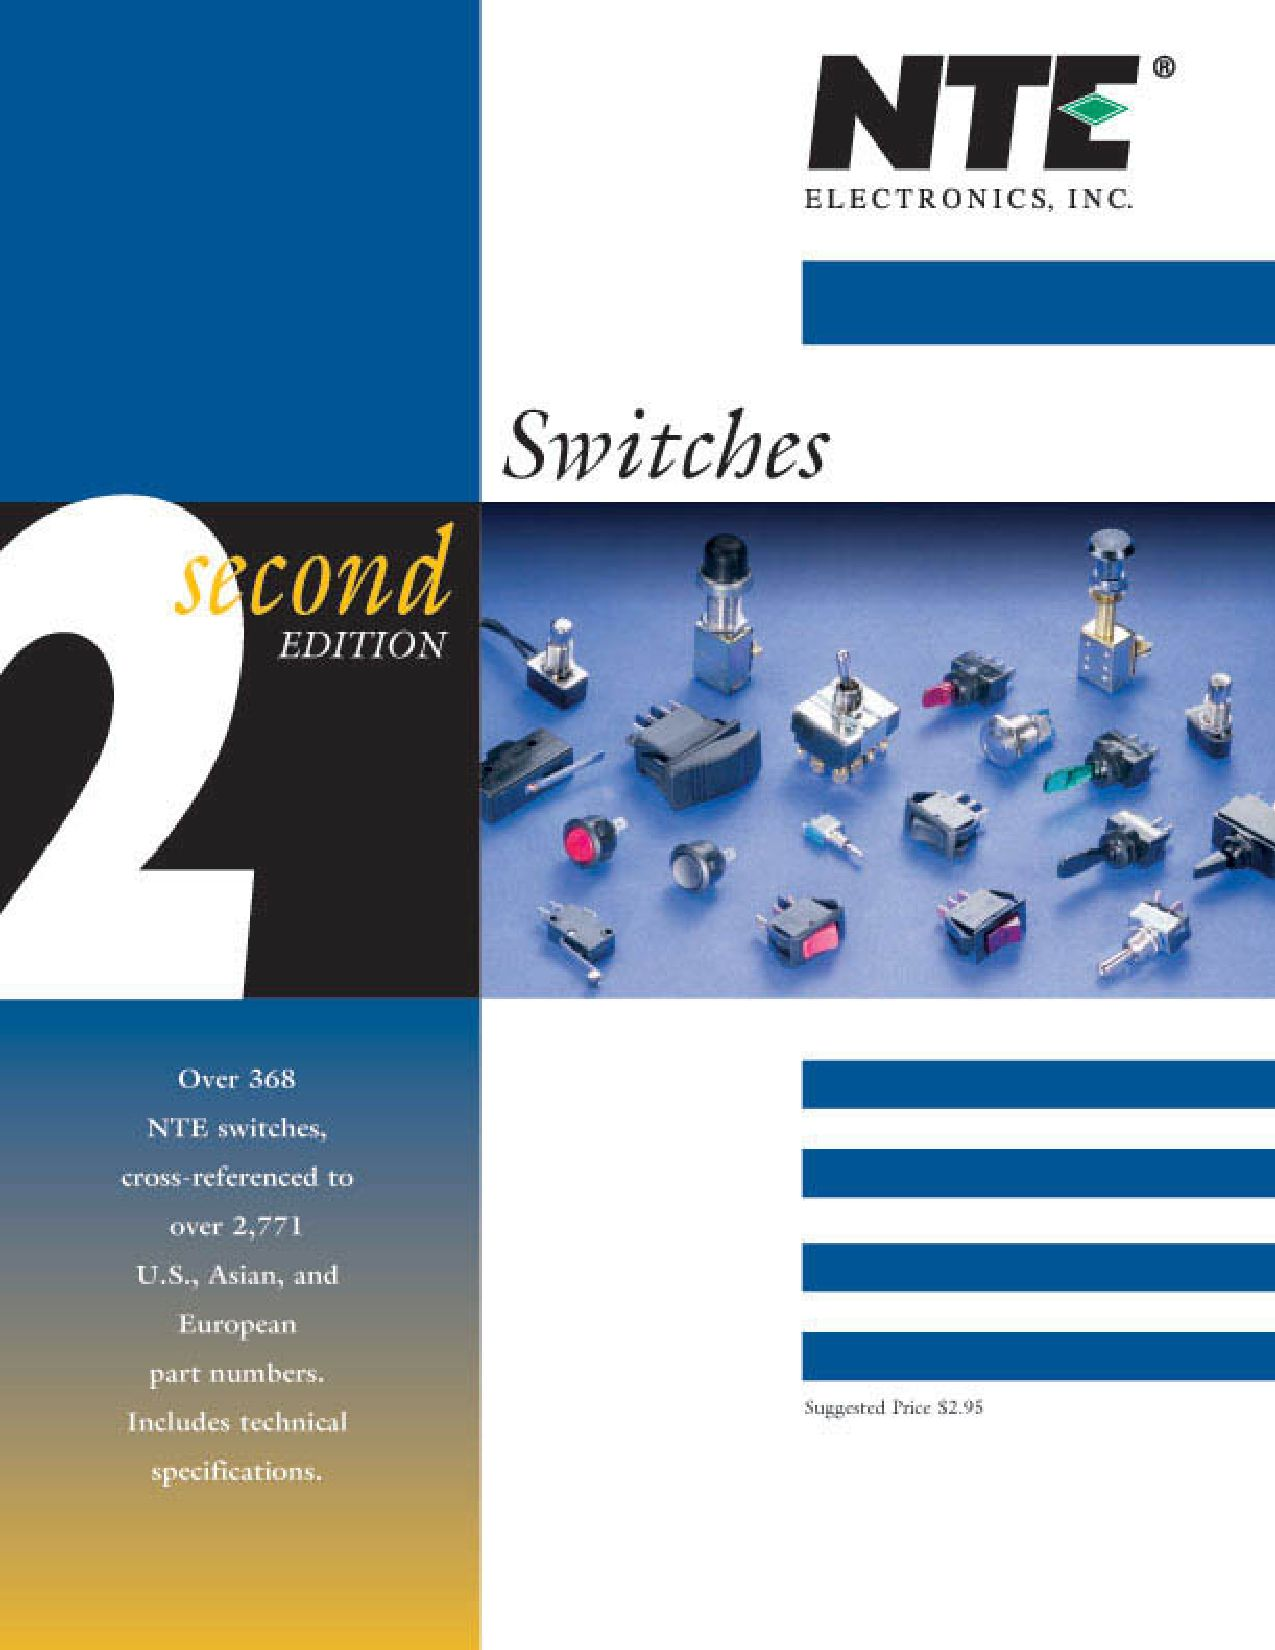 Nte Switch By Synscon Issuu Spst And Ptm Circuits